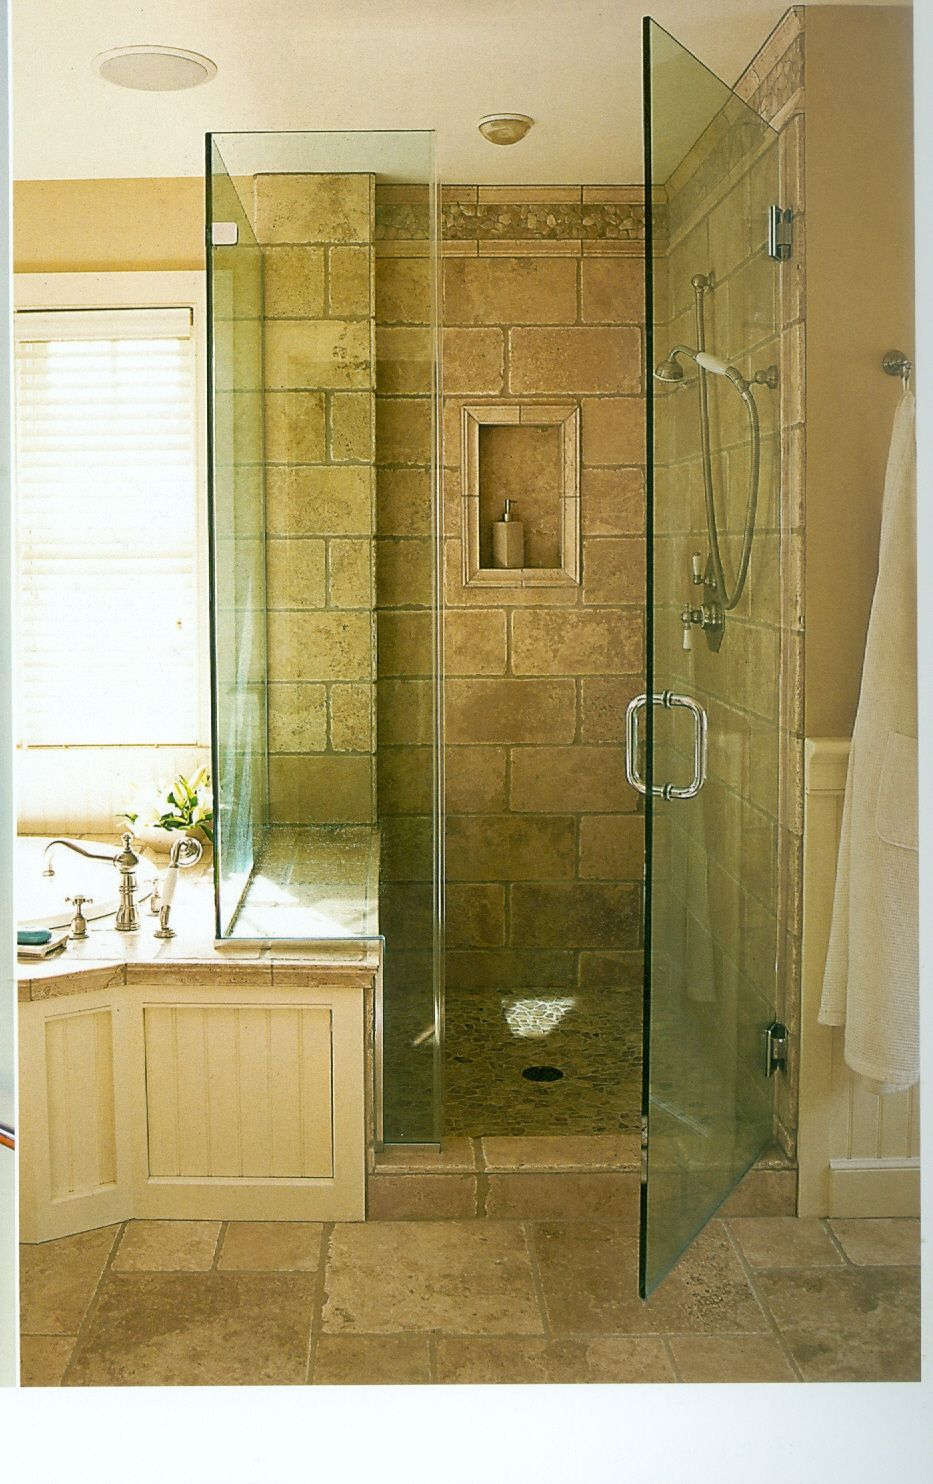 Bathroom Renovation Guide: From Sunset Bathrooms Design Guide